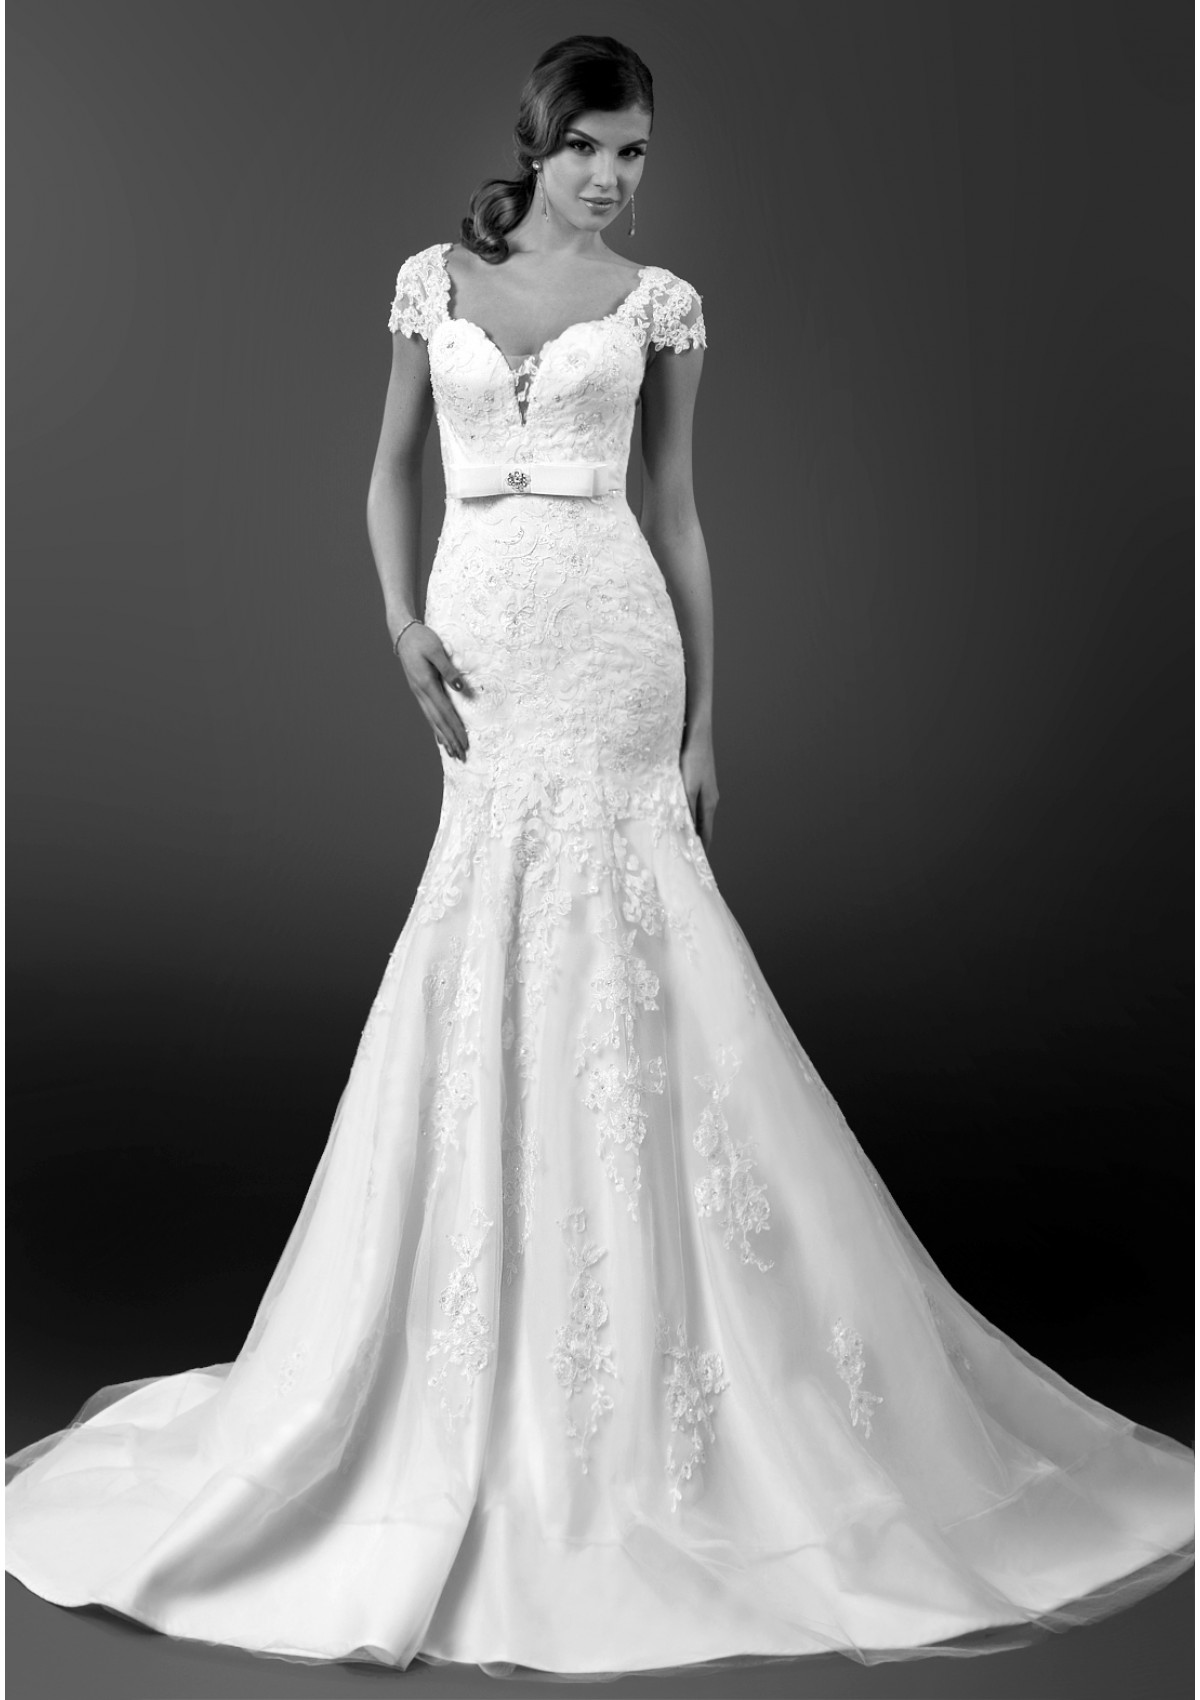 bien-savvy-wedding-dresses-1-08272014nz